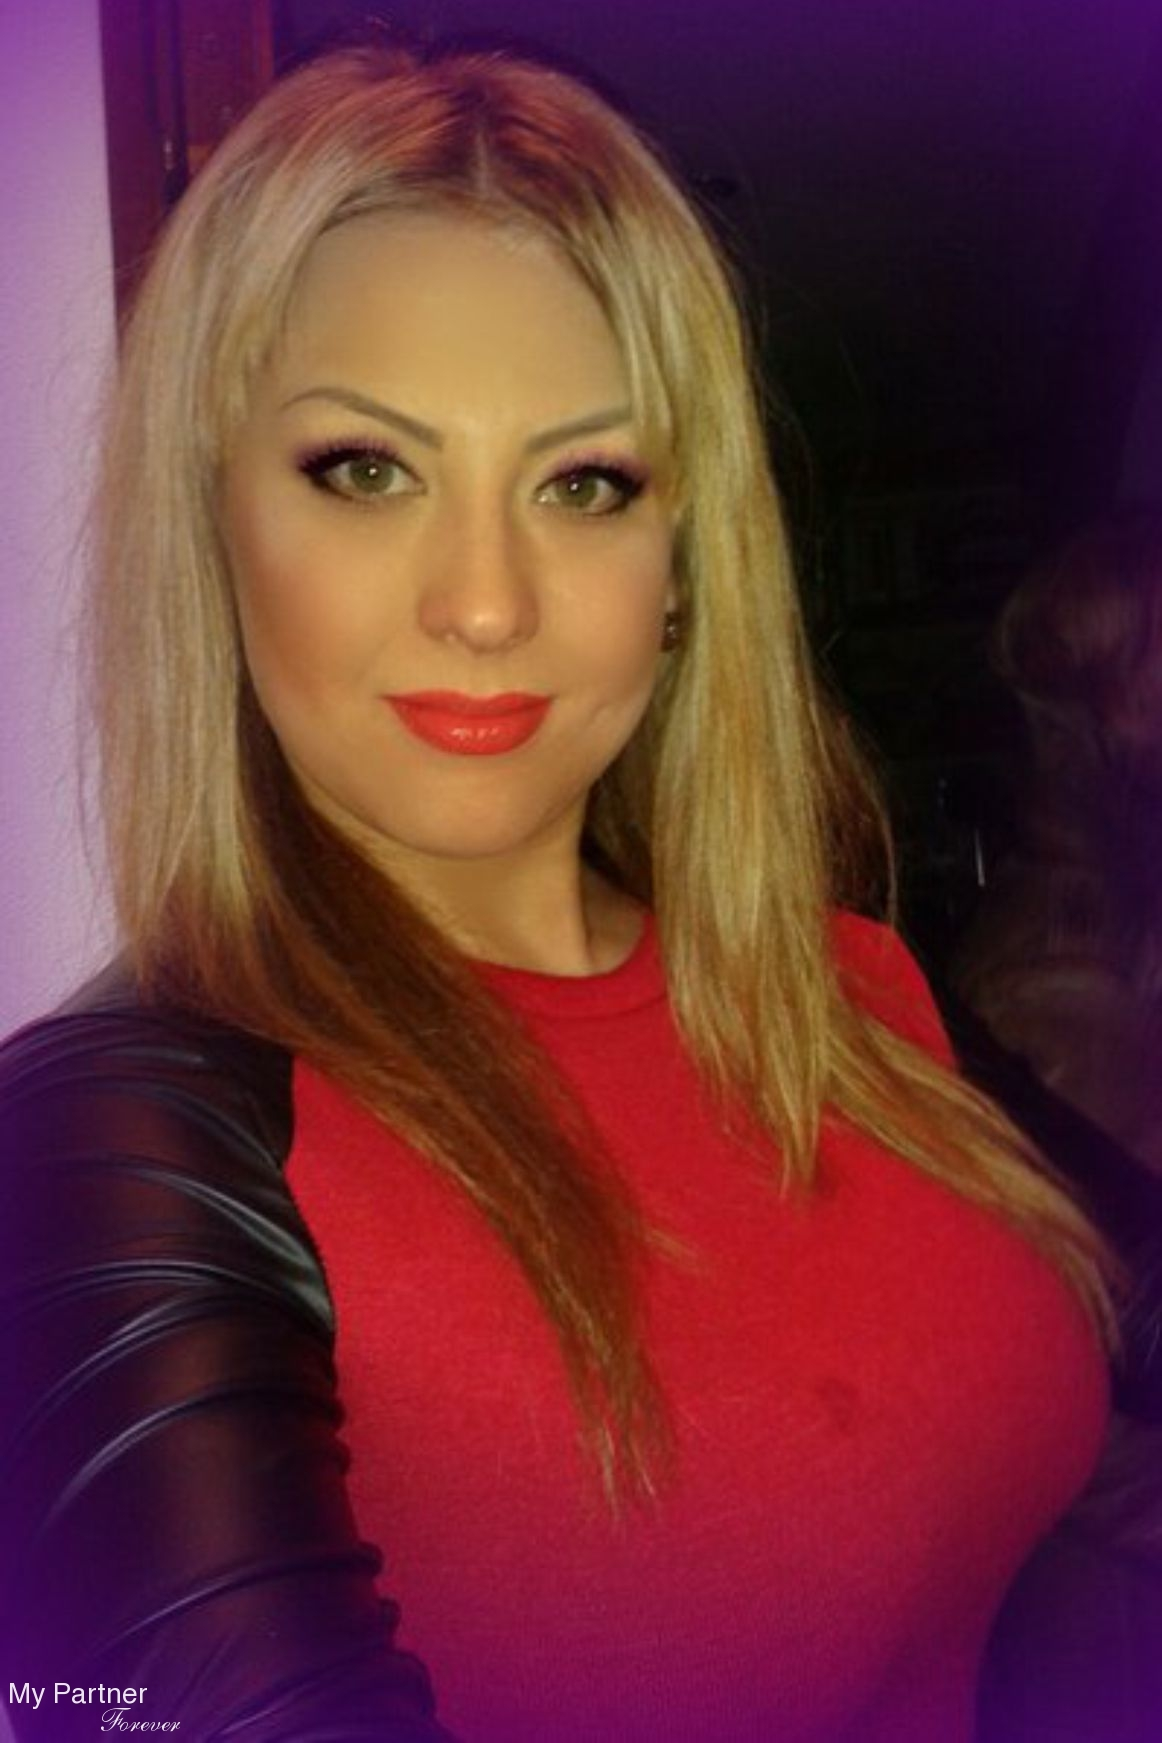 solway singles dating site Upcoming events in calgary from mix and mingles over 40 singles speed dating agency auckland new zealand bowness-on-solway i am looking for a.